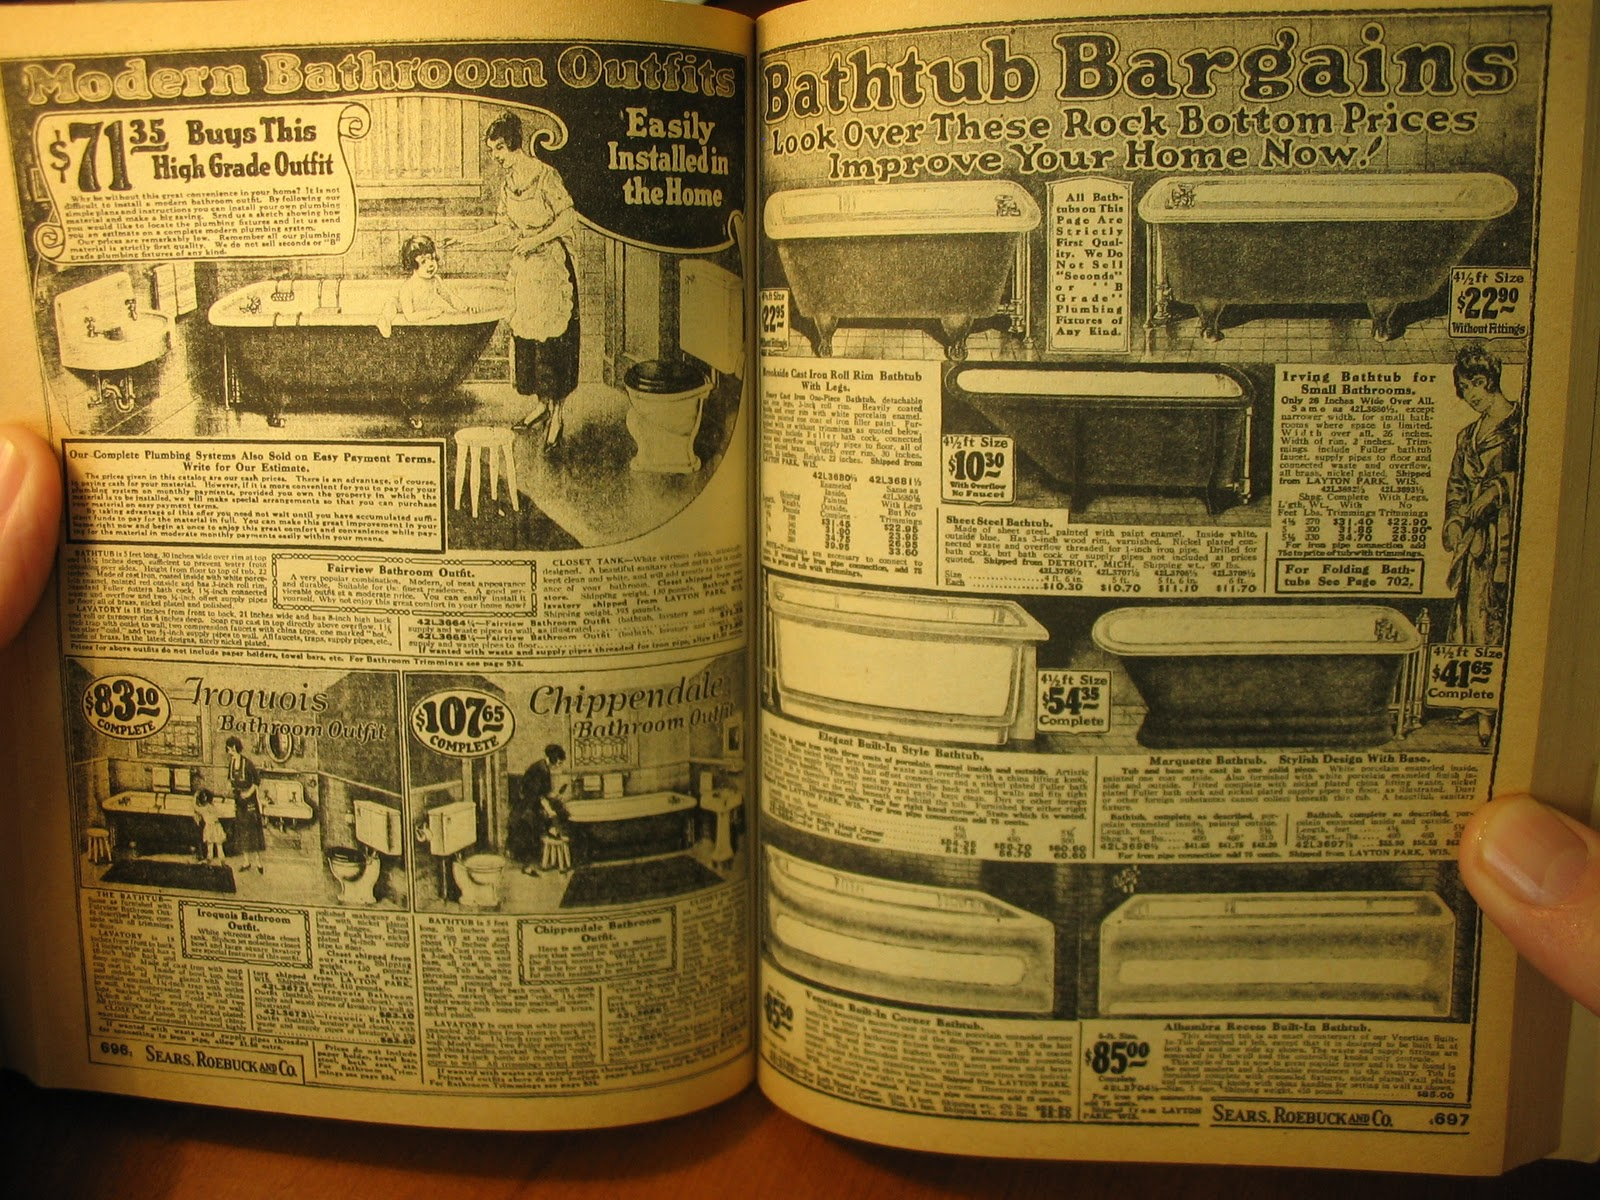 Kit Cars To Build Yourself In Usa: Lyrics Of Love And Lore: The 1923 Sears-Roebuck Catalogue